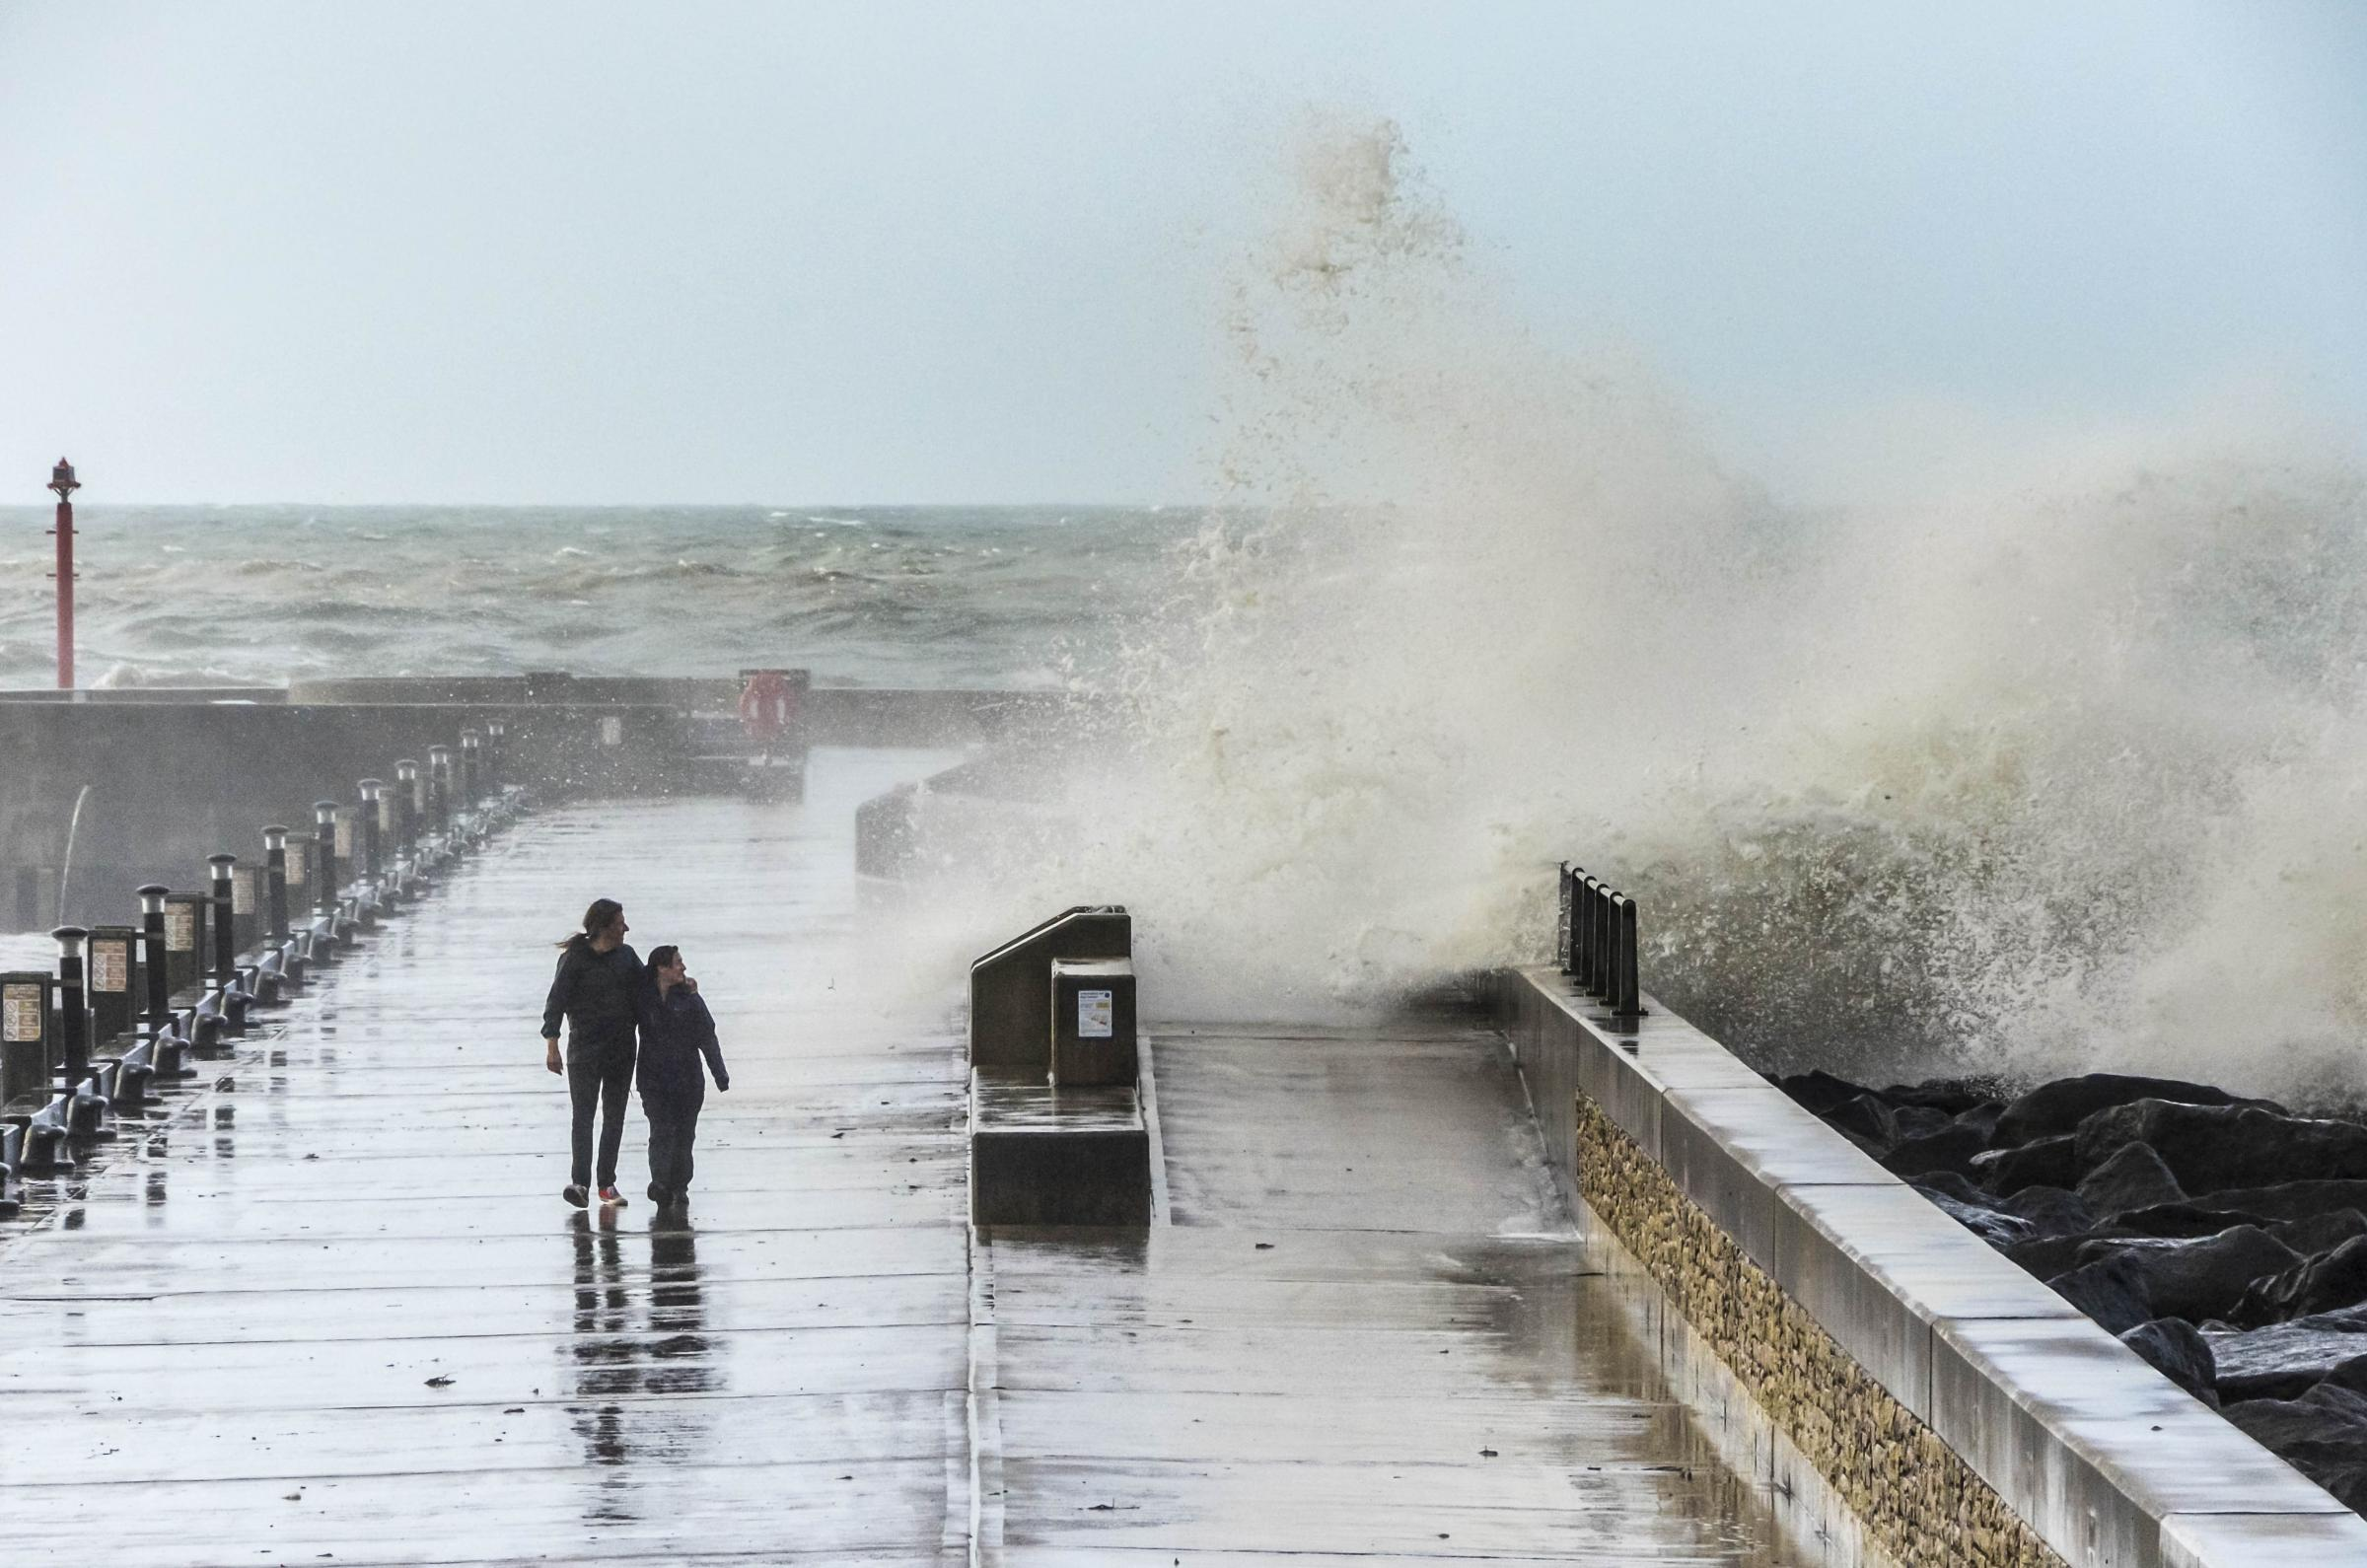 West Bay, Dorset, UK - 20th August 2016 - UK Weather.  A thrill seeking couple watching a wave crashing over the sea defences of the Jurassic Pier during a morning of rough seas and gale force winds which battered the costal resort of West Bay in Dorset d